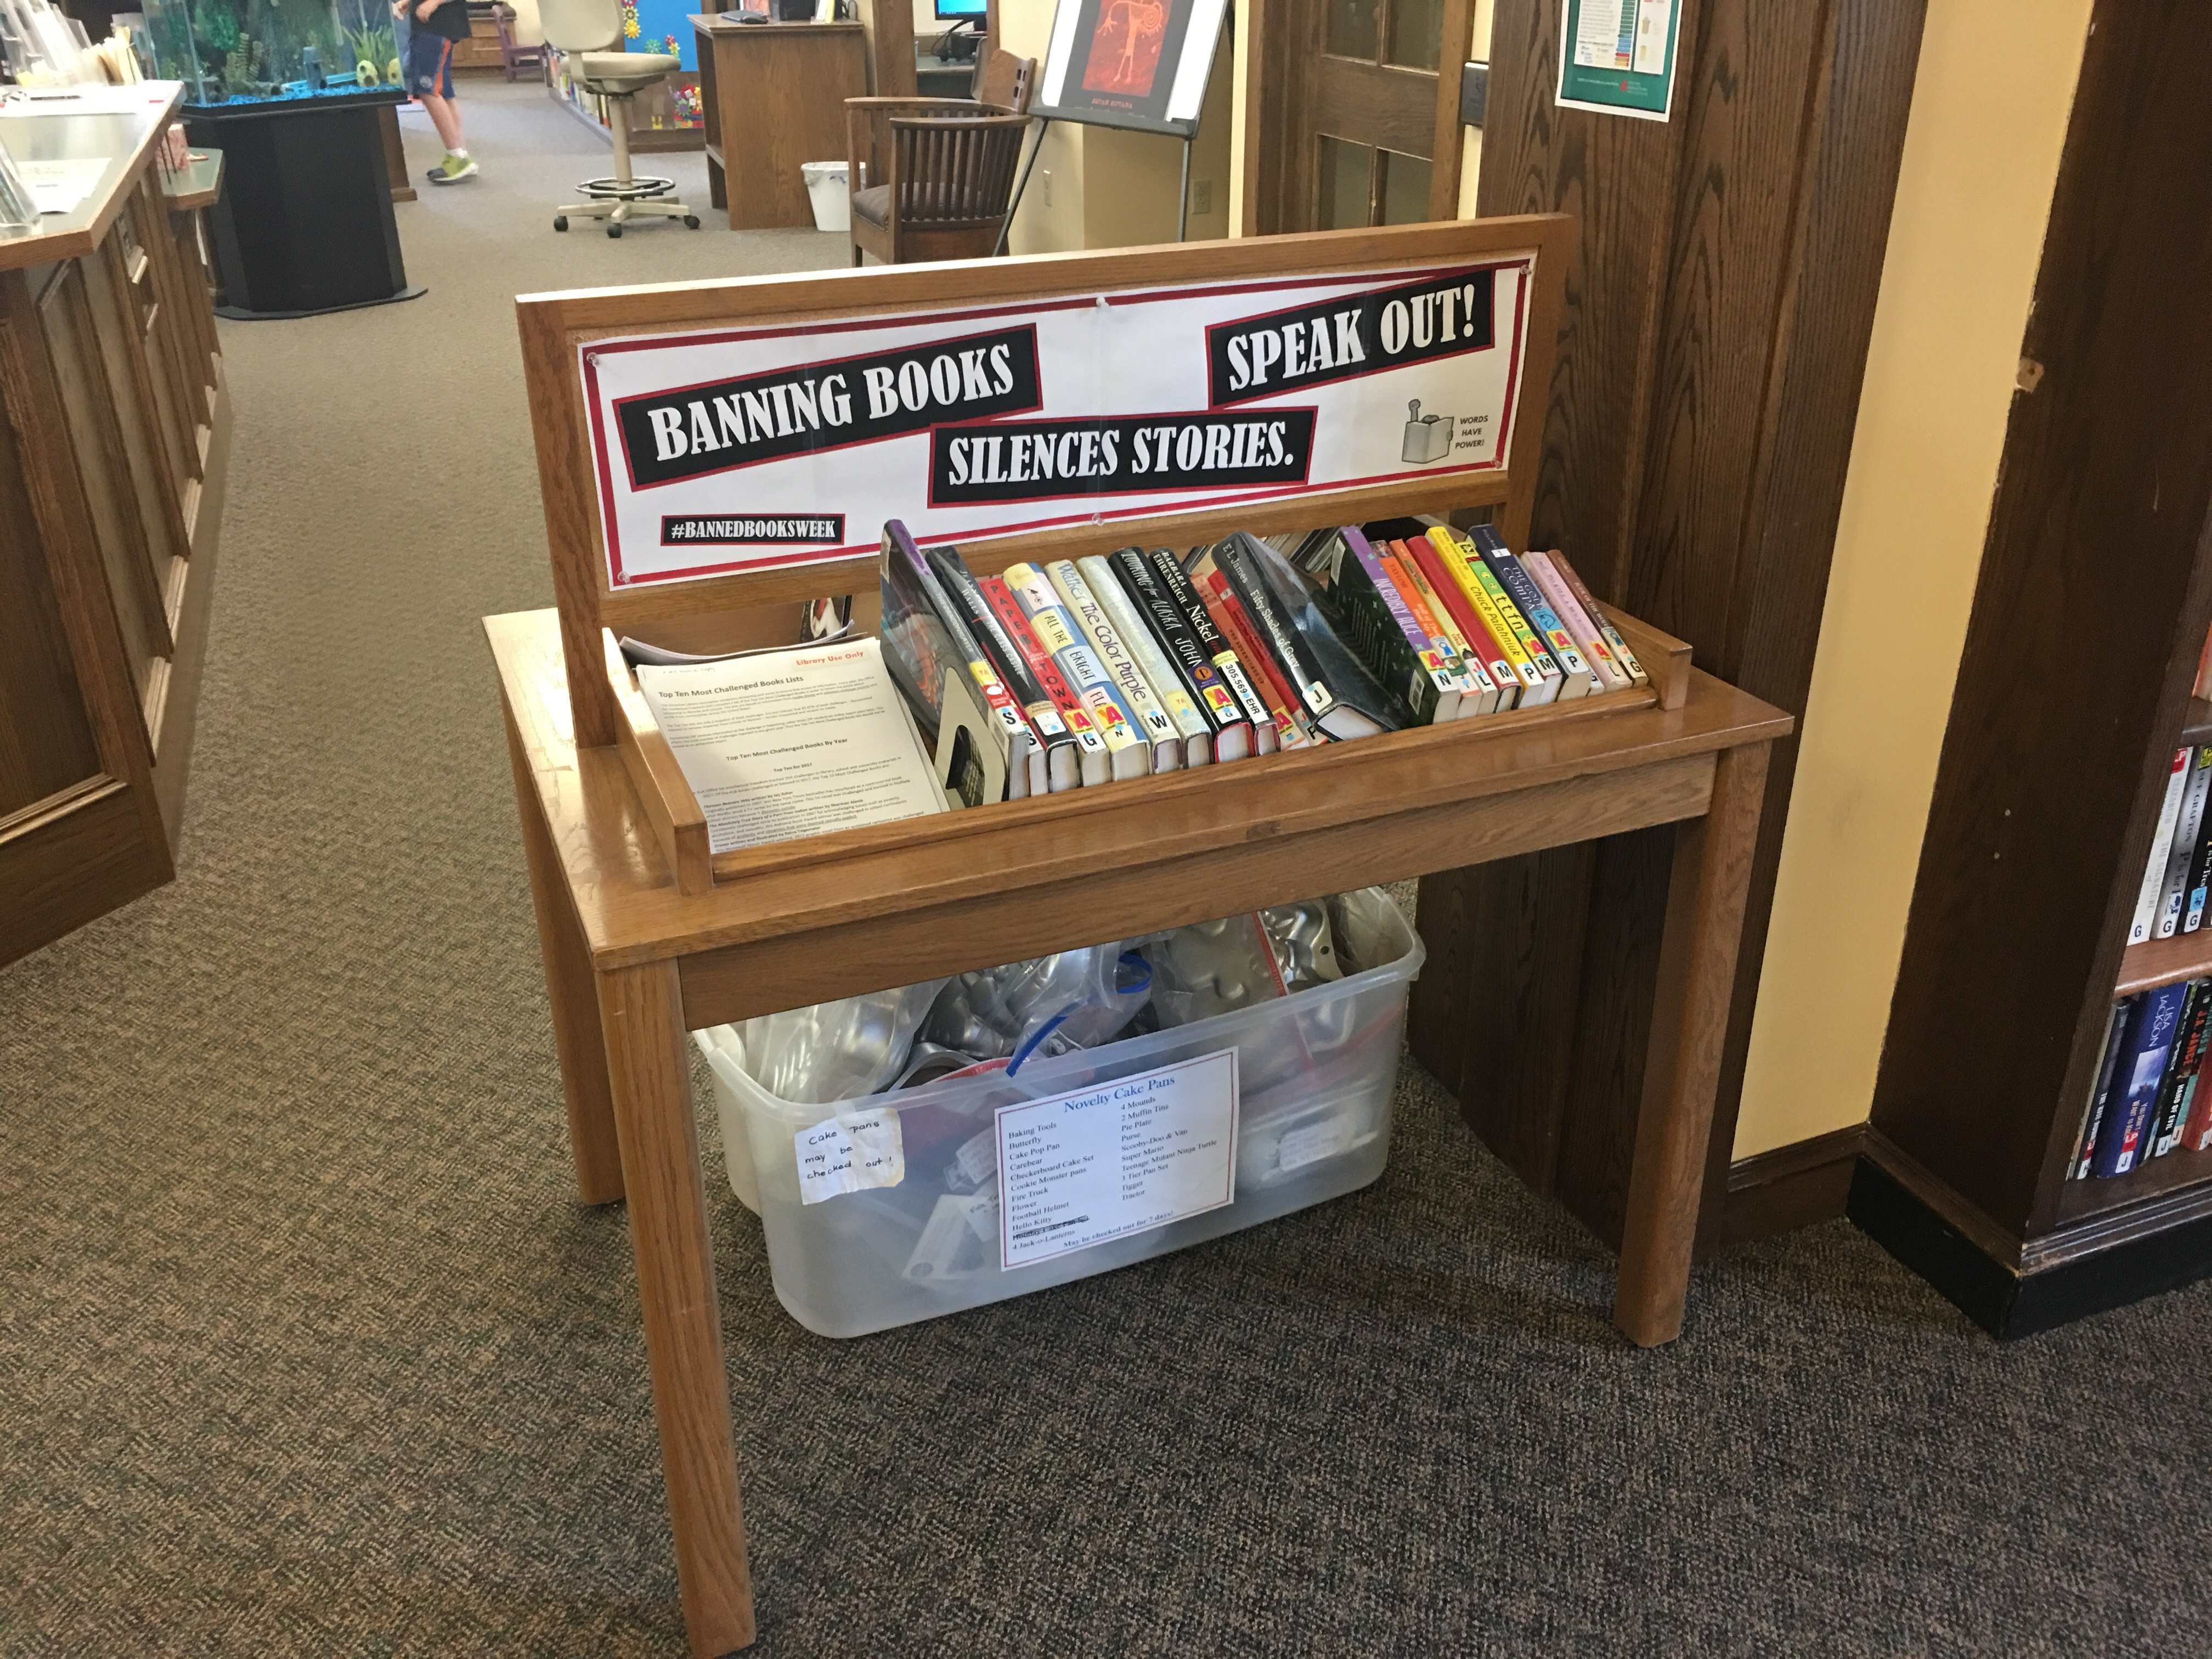 Banned Books Display, Cuba Circulating Library